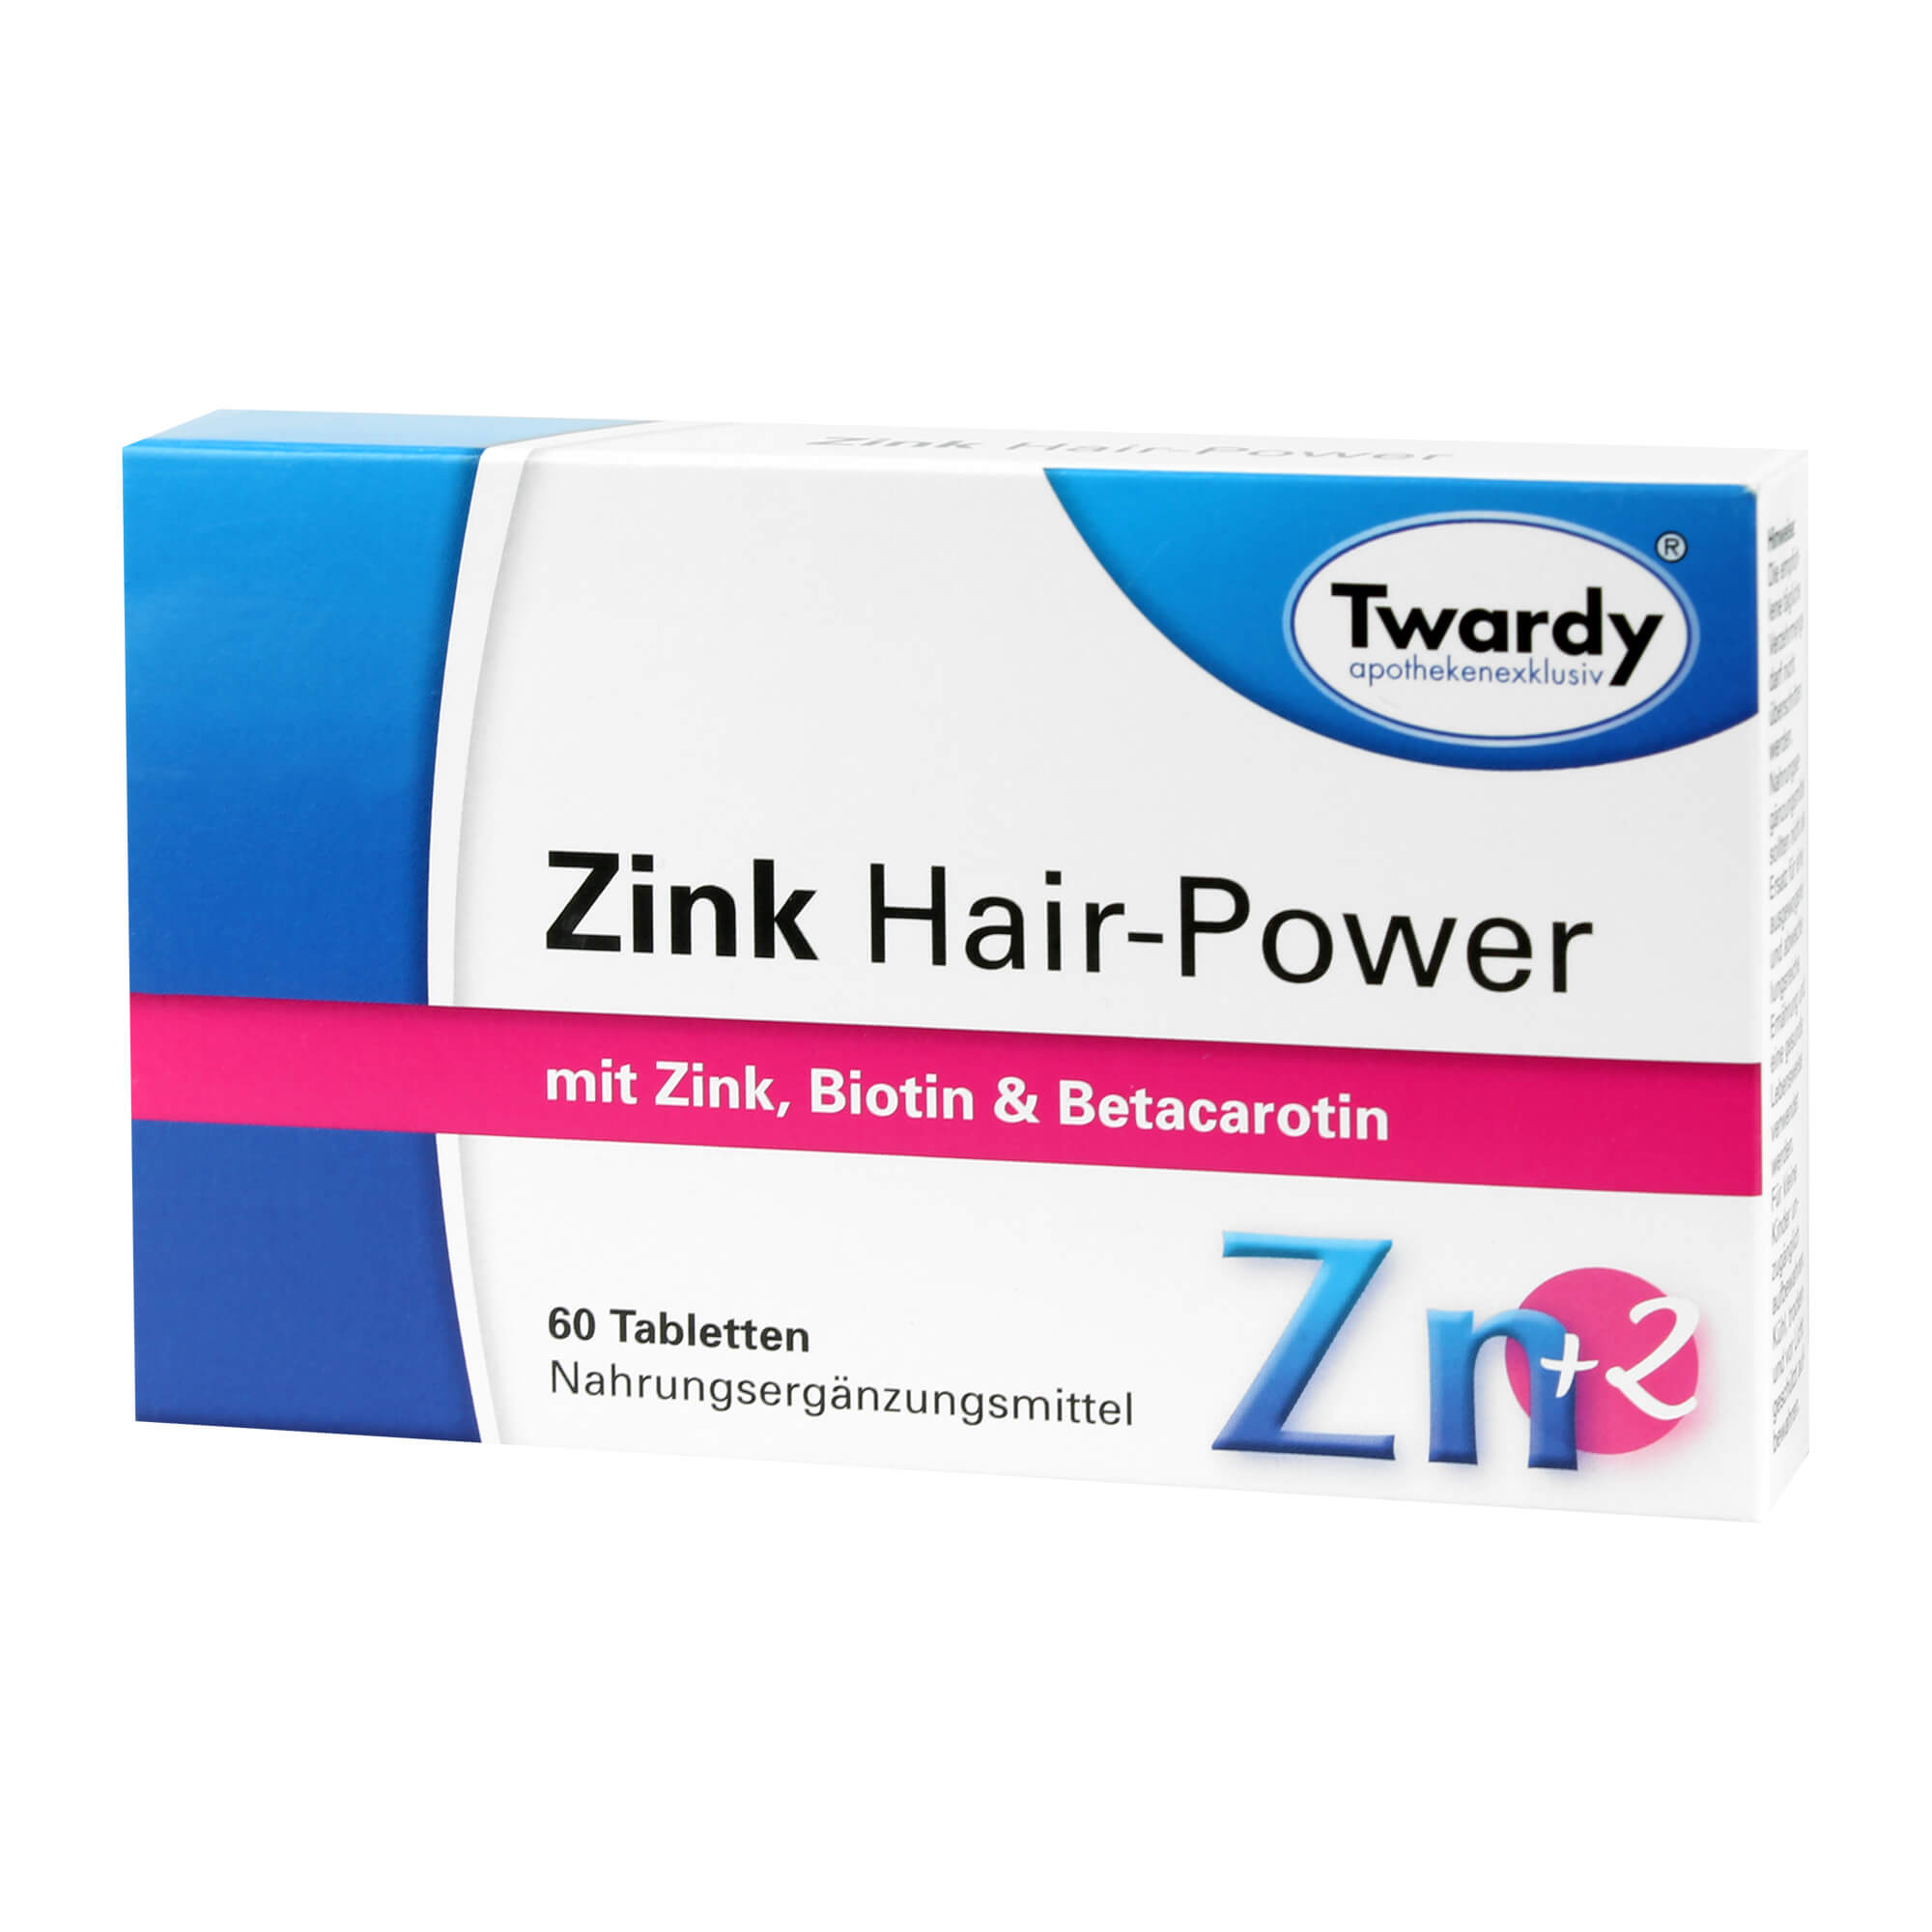 Zink Hair-Power Tabletten